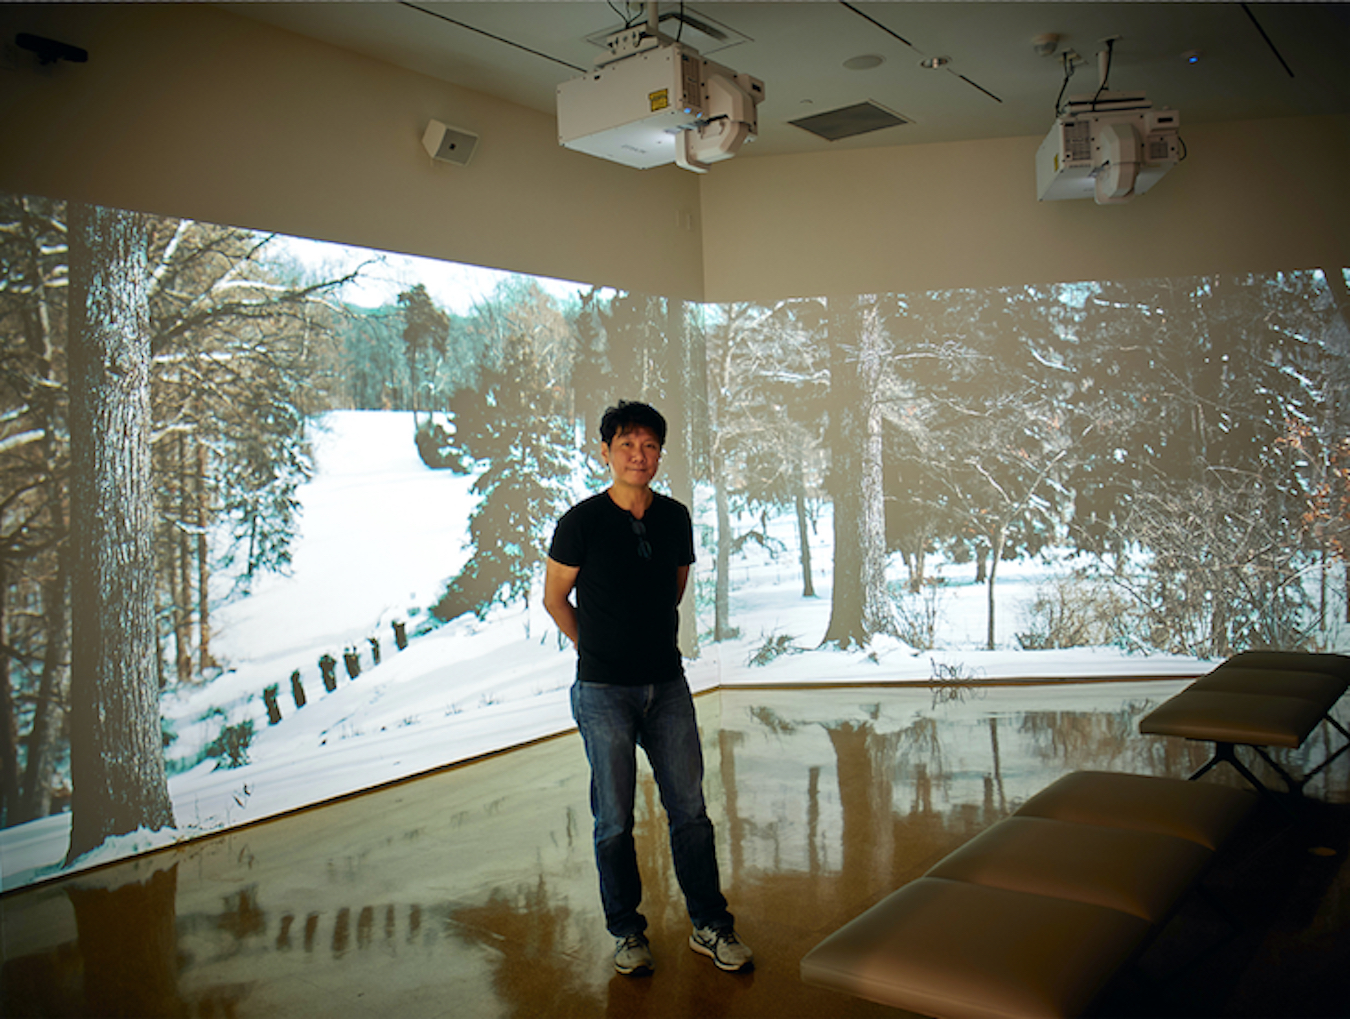 Photographer Paige Strobel visited several local galleries for her LP photo essay, 'Galleries Adapt to Pandemic While Artists Continue to Create.' Pictured is Jawshing Arthur Liou in front of his high-definition, multichannel video installation, 'House of the Singing Winds,' which shows the changing seasons at the historic home and studio of Hoosier painter T.C. Steele. The work is currently on view at the Sidney and Lois Eskenazi Museum of Art. | Photo by Paige Strobel